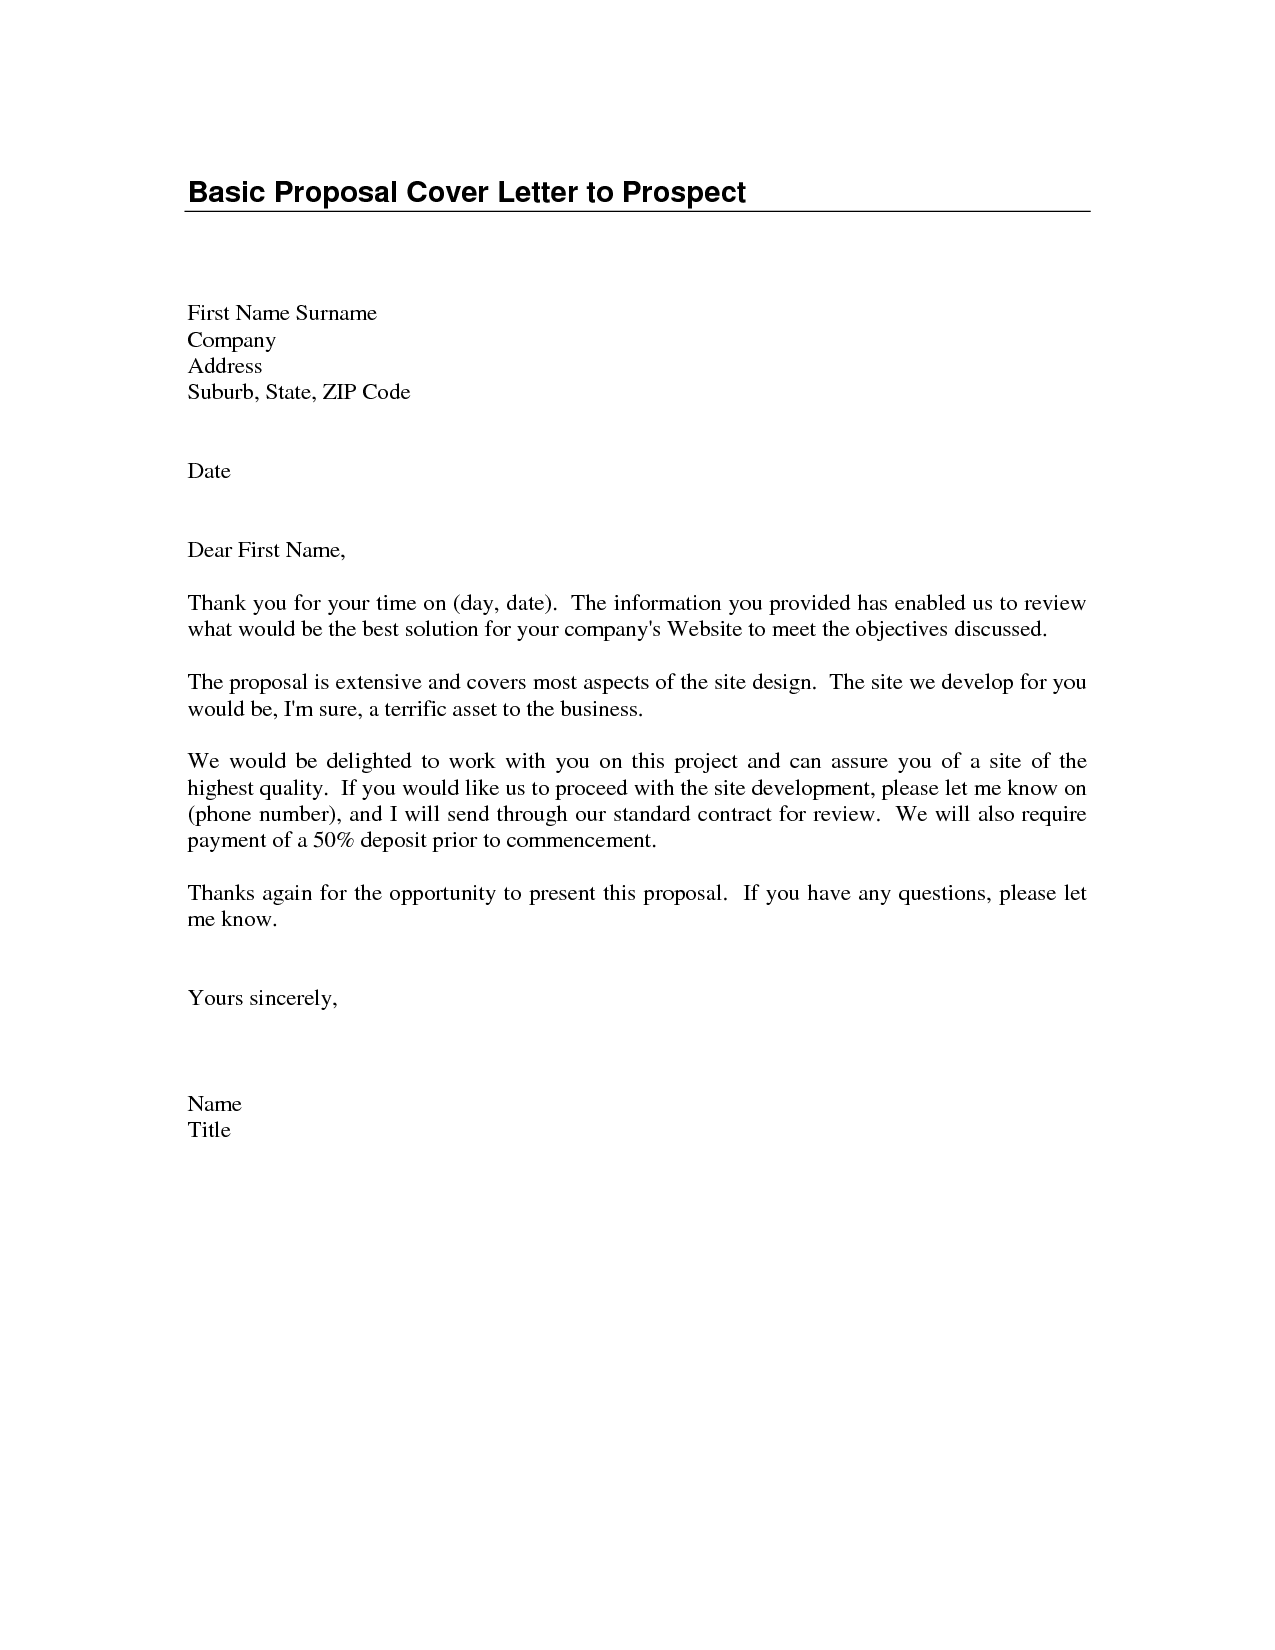 Basic Cover Letter Sample Basic Cover Letters Free ...